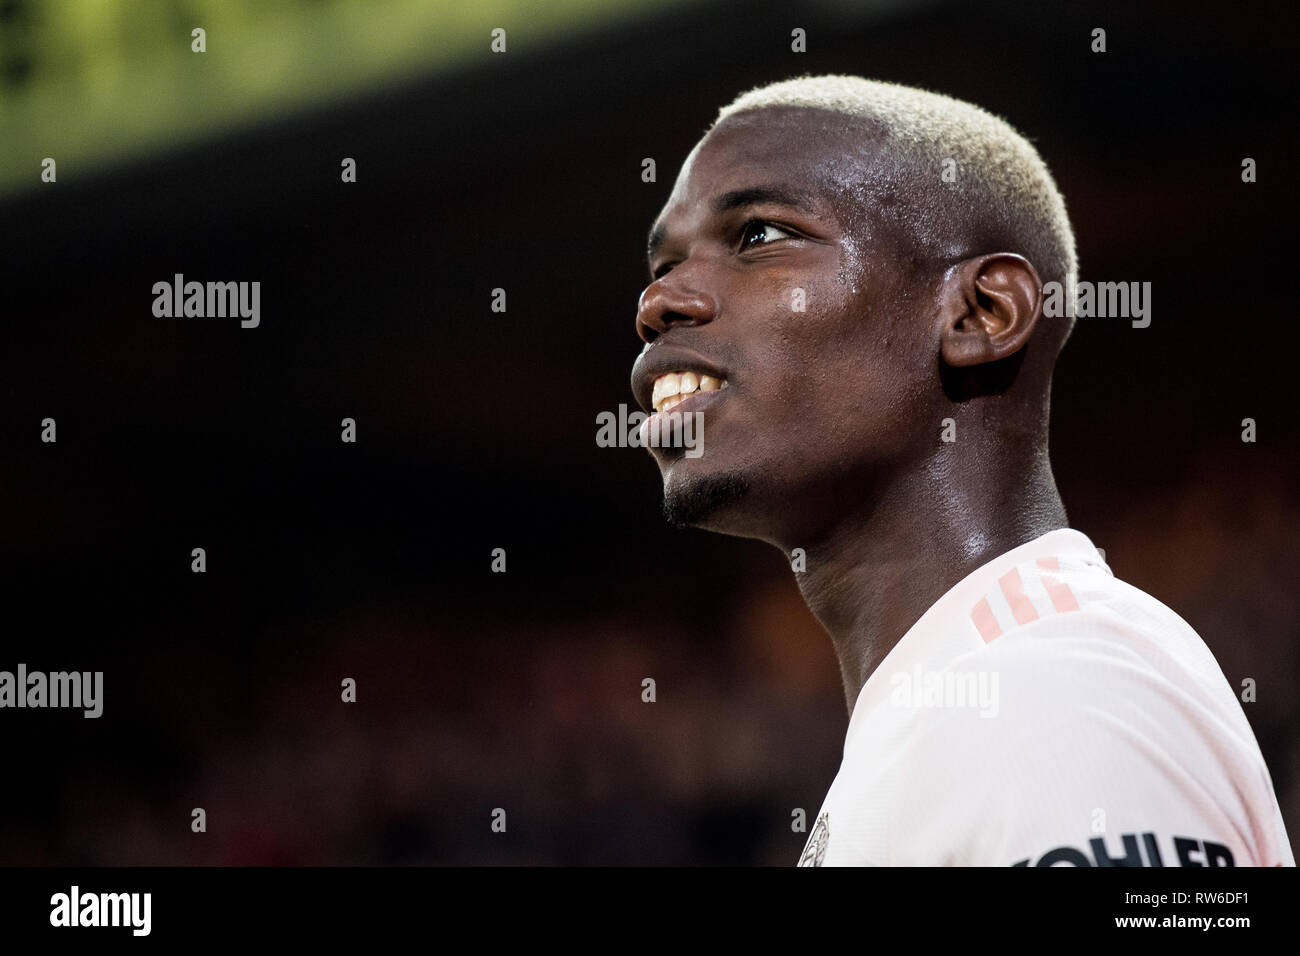 LONDON, ENGLAND - FEBRUARY 27: Paul Pogba of Manchester United looks on during the Premier League match between Crystal Palace and Manchester United a - Stock Image